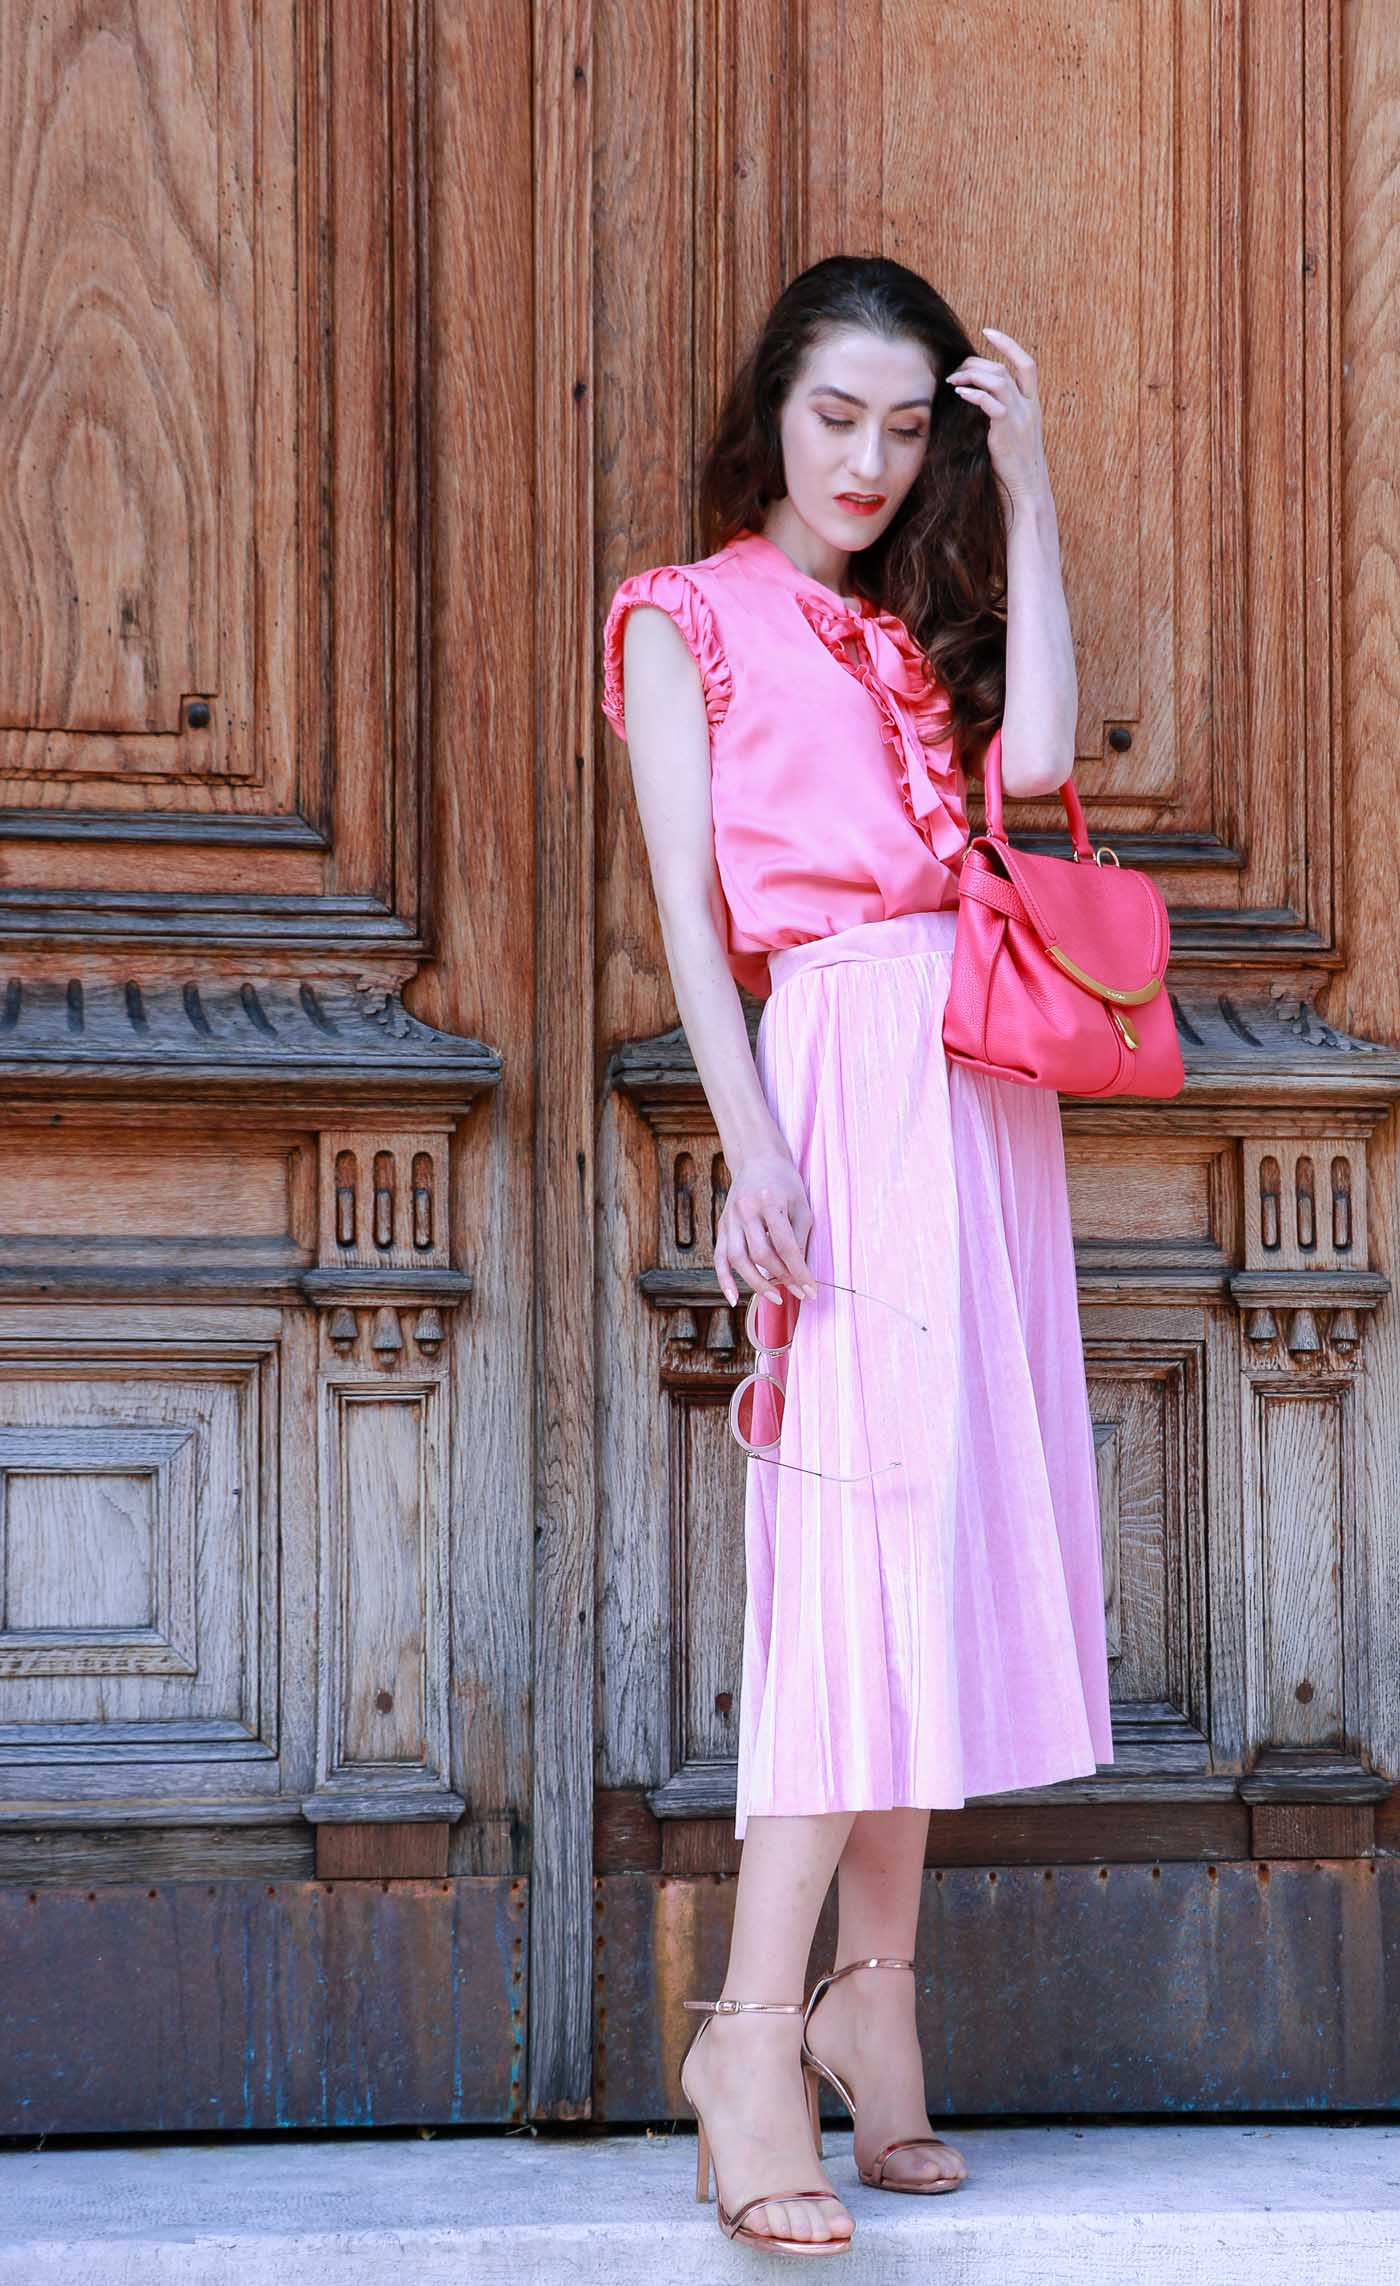 Fashion Blogger Veronika Lipar of Brunette from Wall Street wearing monochrome pink outfit while standing at the door